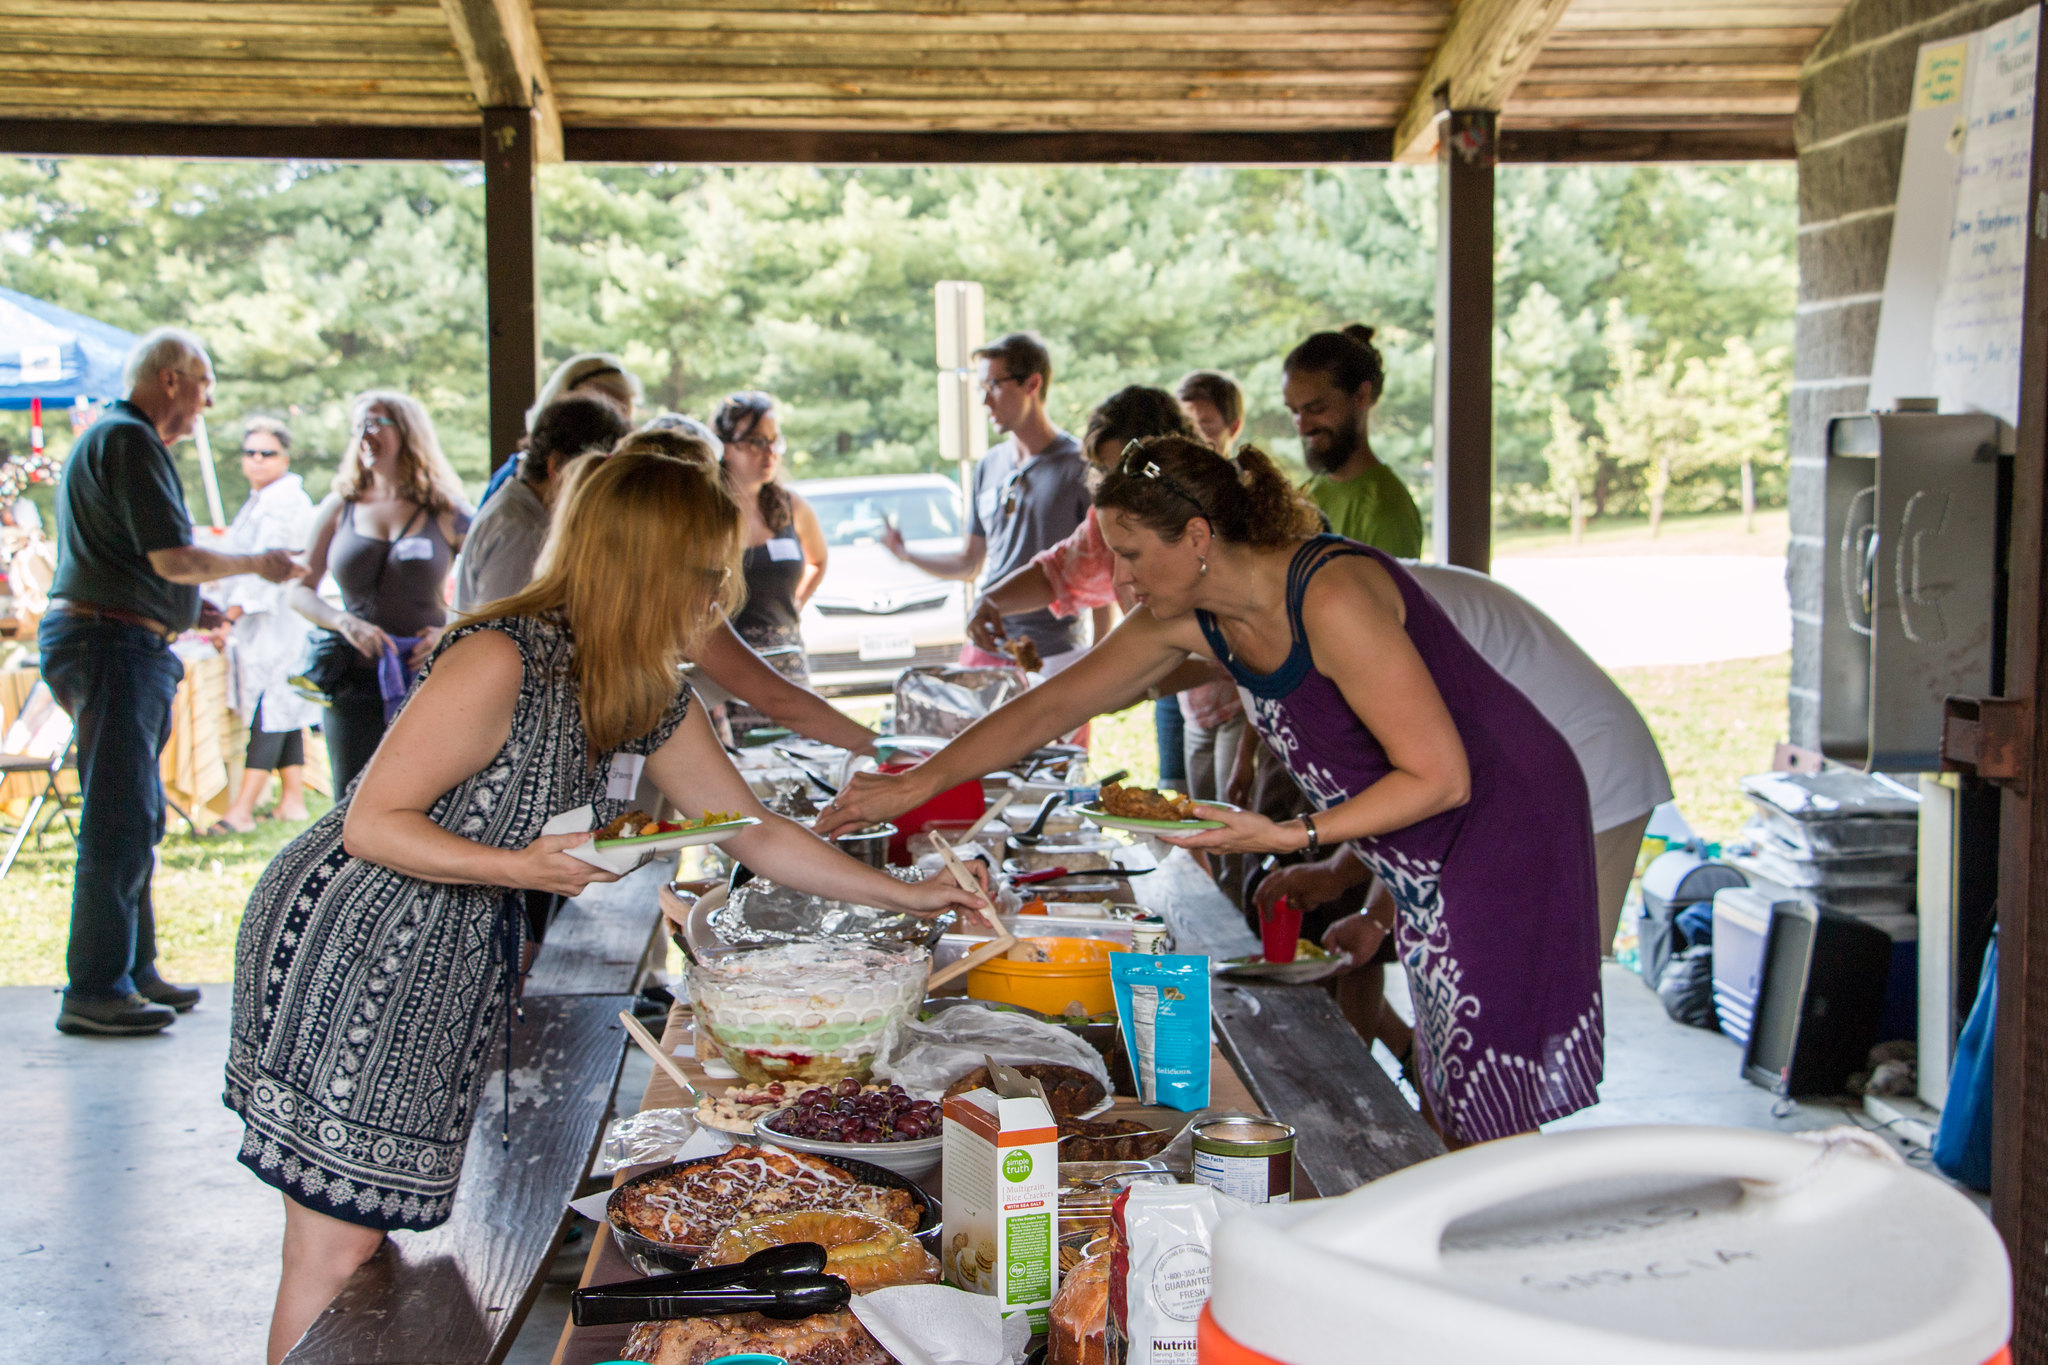 Photo of people grabbing food from a picnic table covered with different dishes.